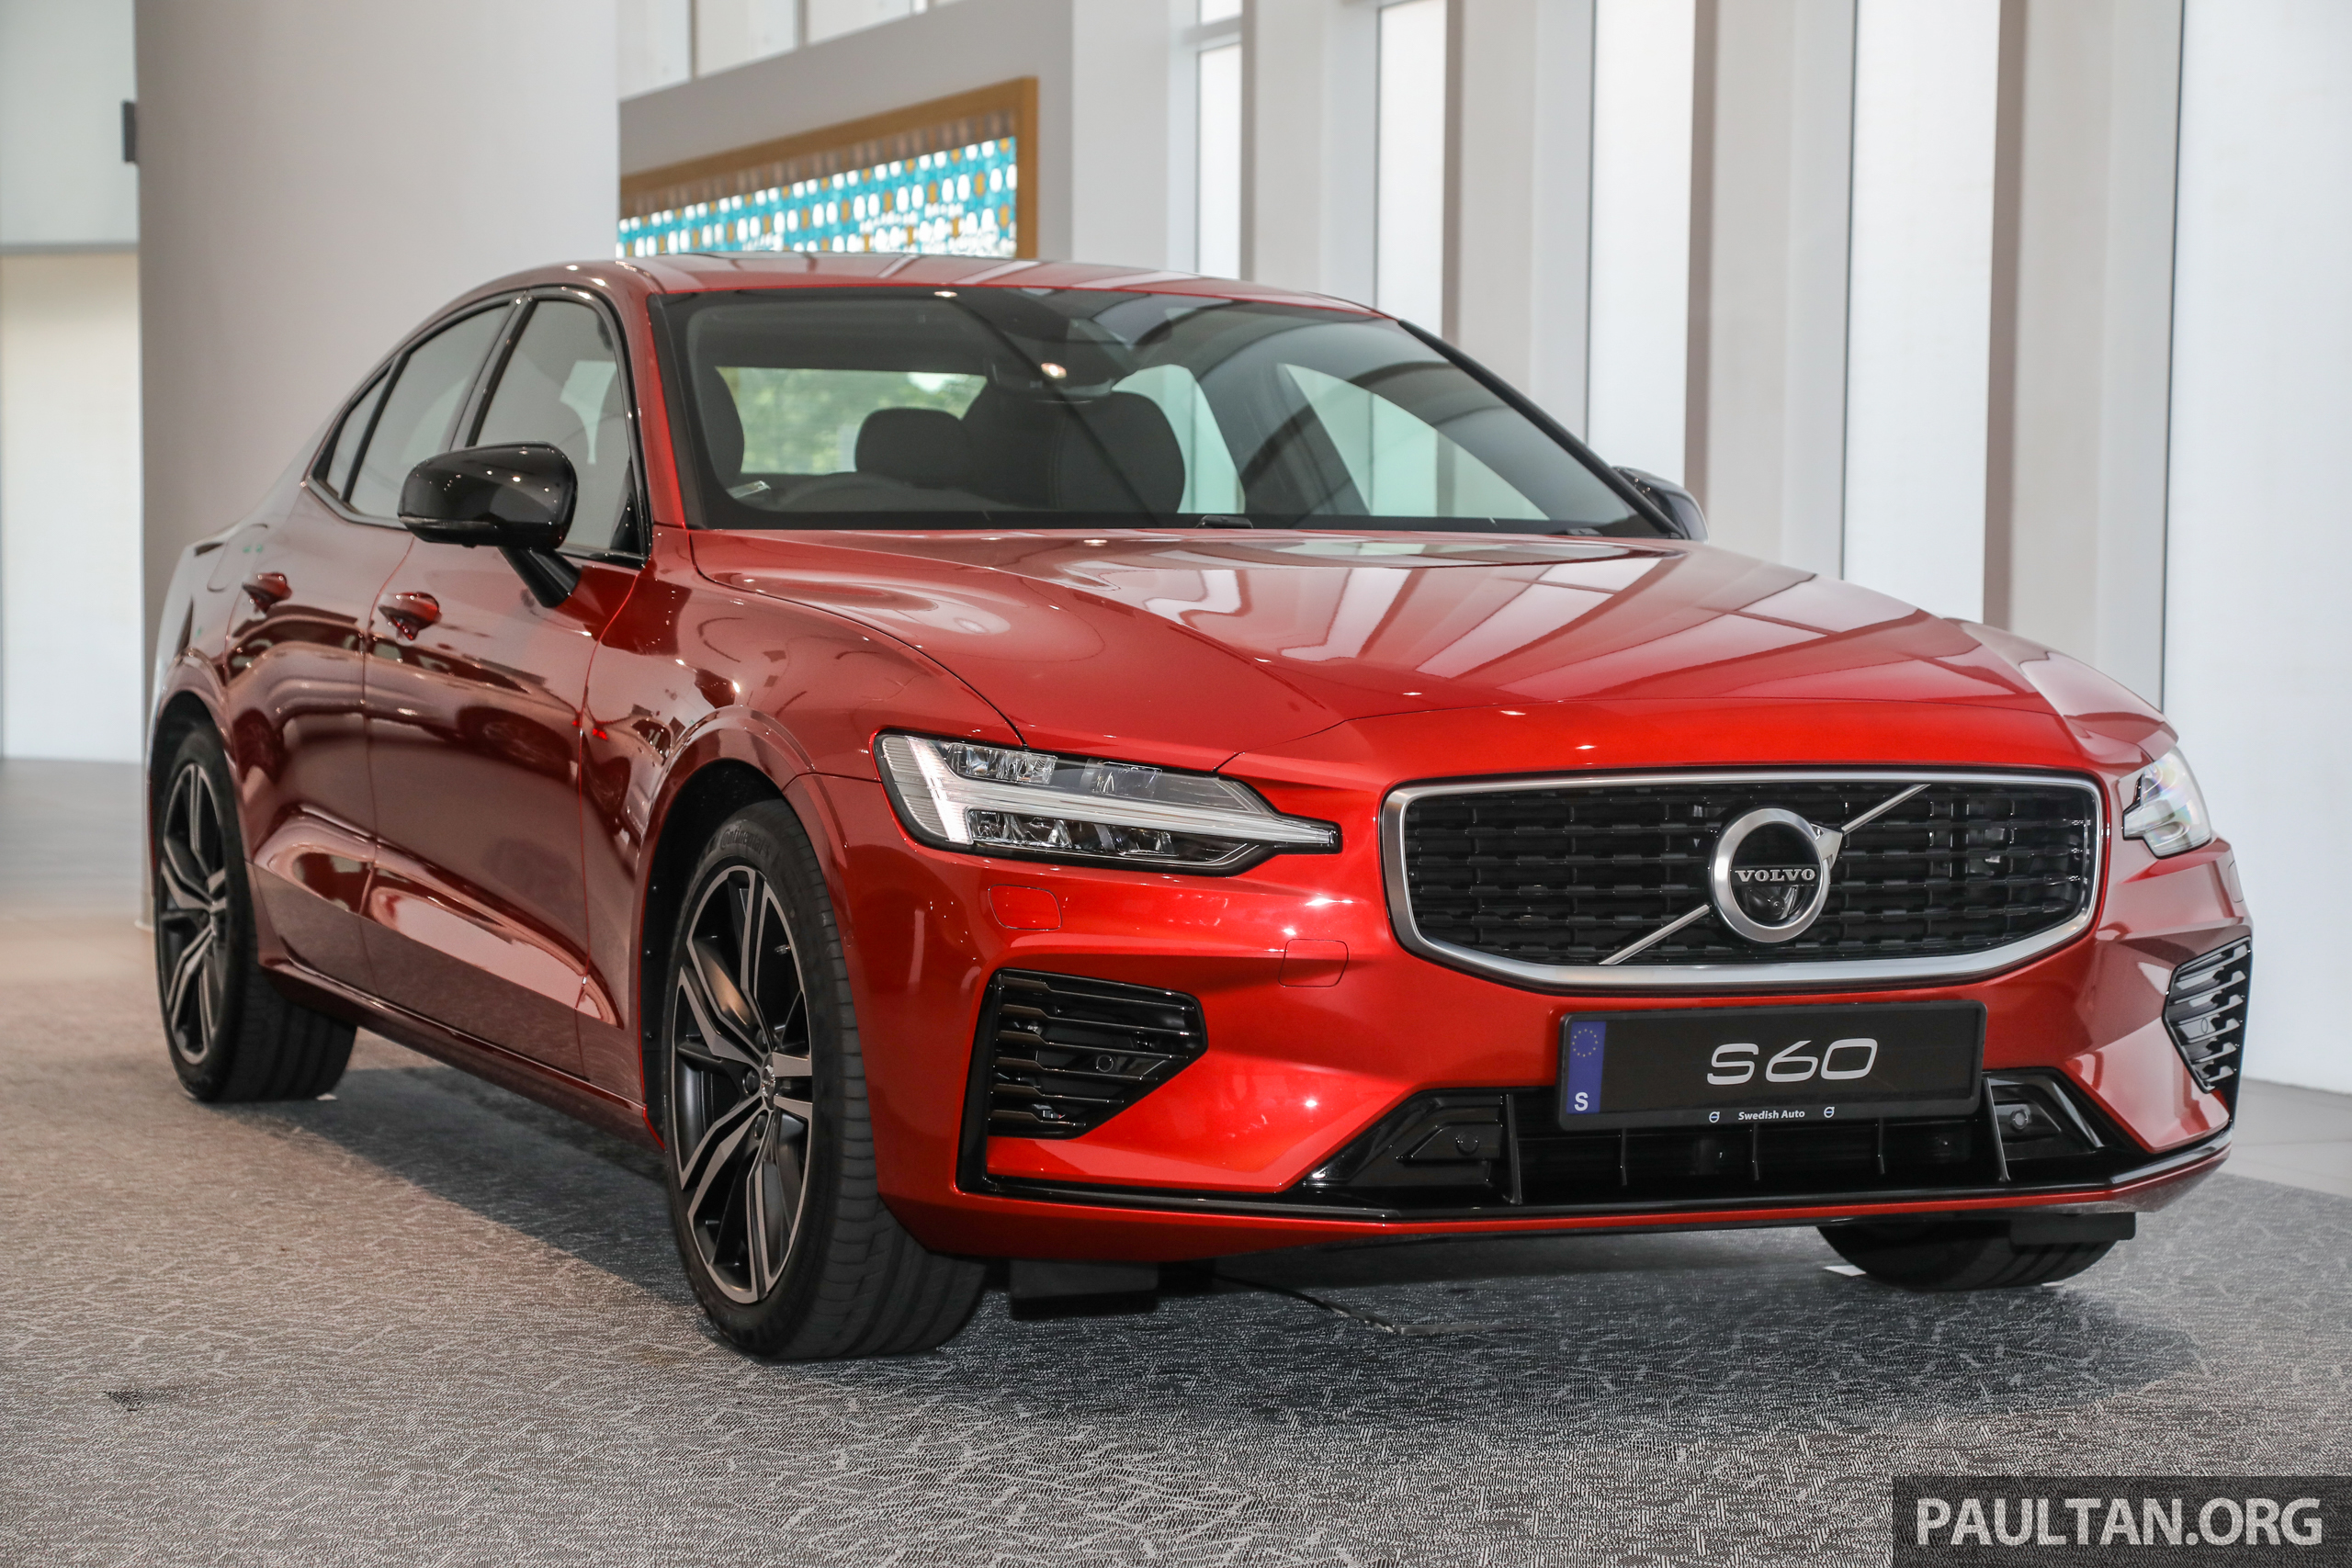 2020 Sst Exemption New Volvo Price List Announced Up To Rm23 078 Or 6 52 Cheaper Until December 31 Paultan Org